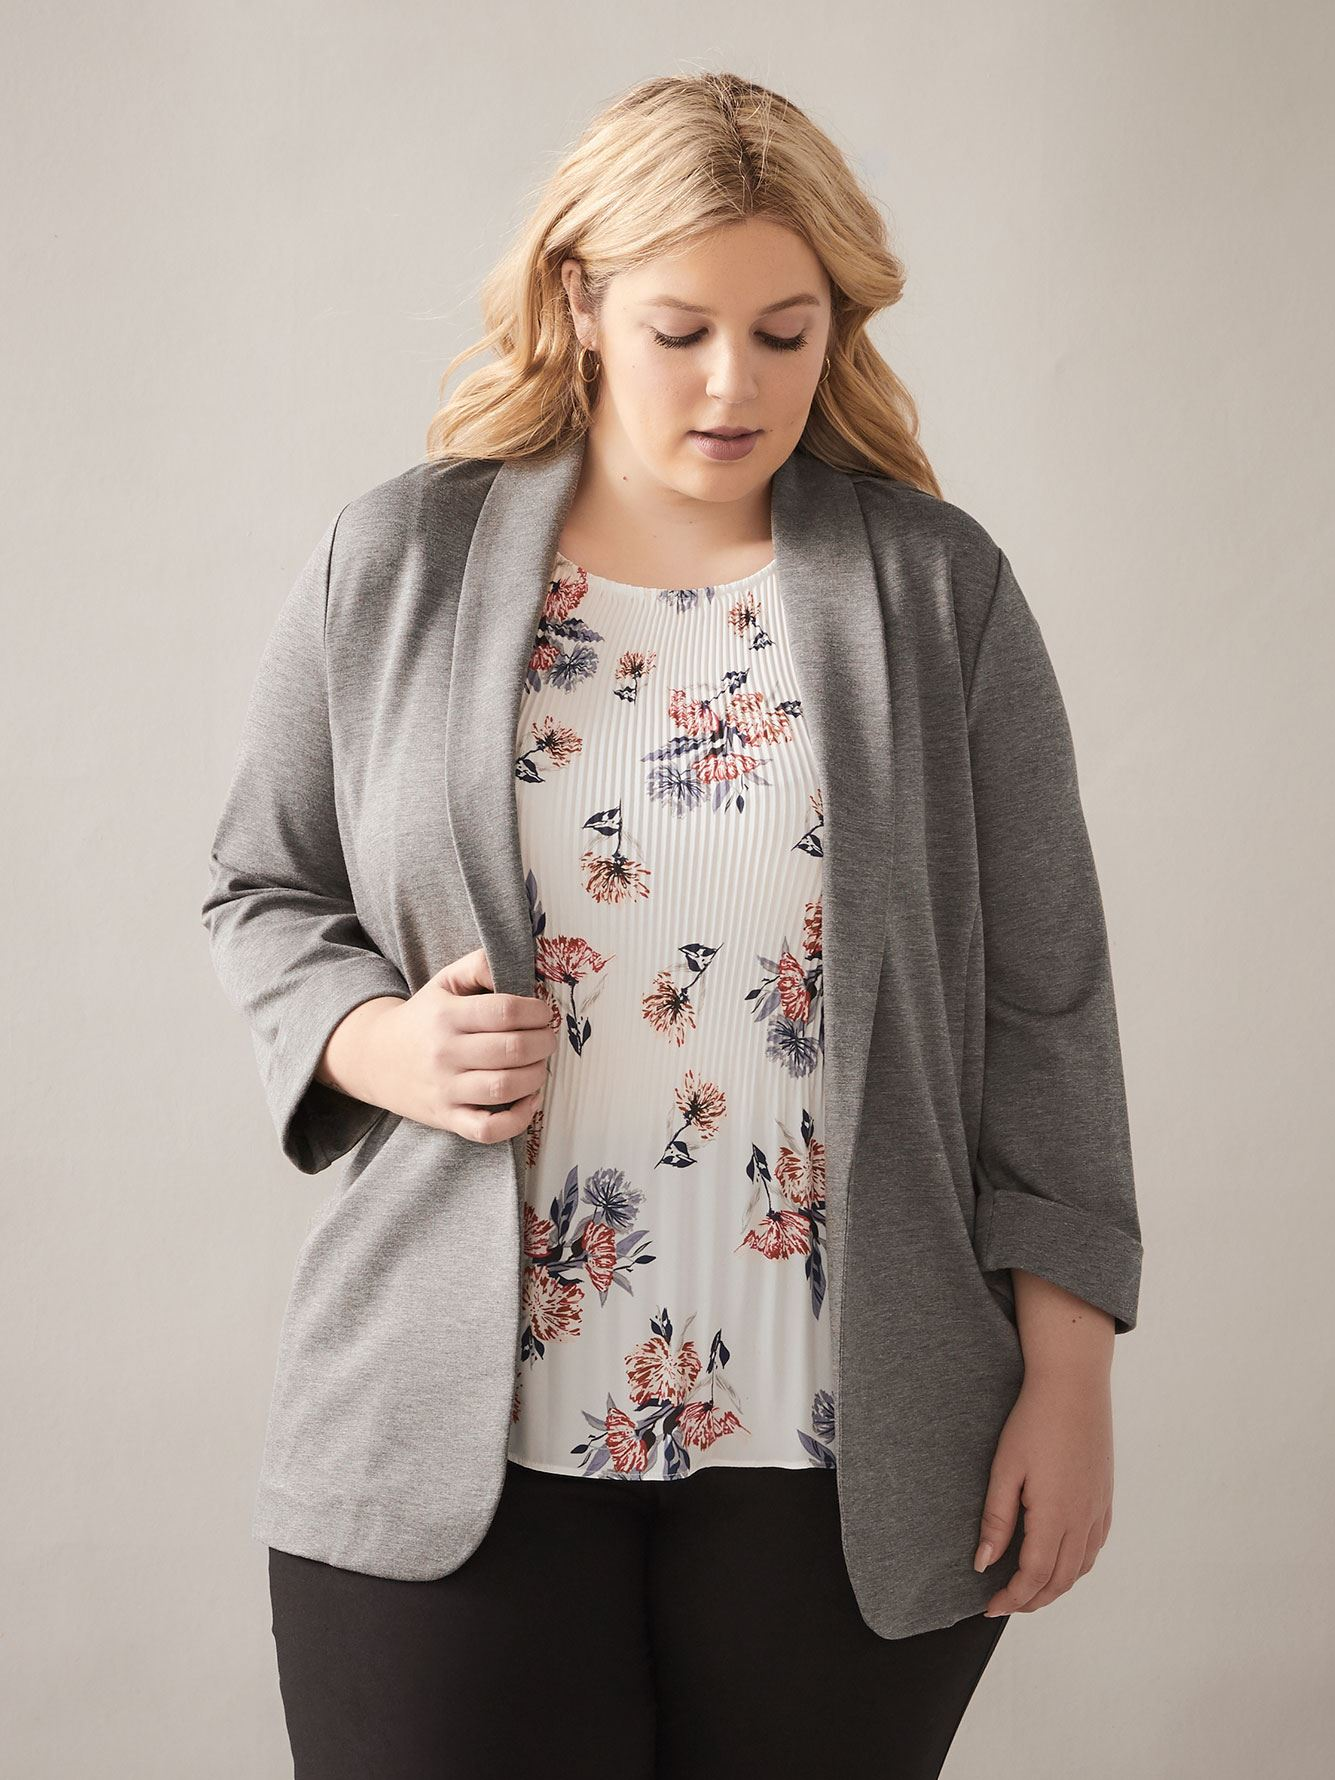 Semi-Fitted Three-Quarter Sleeve Blazer - In Every Story